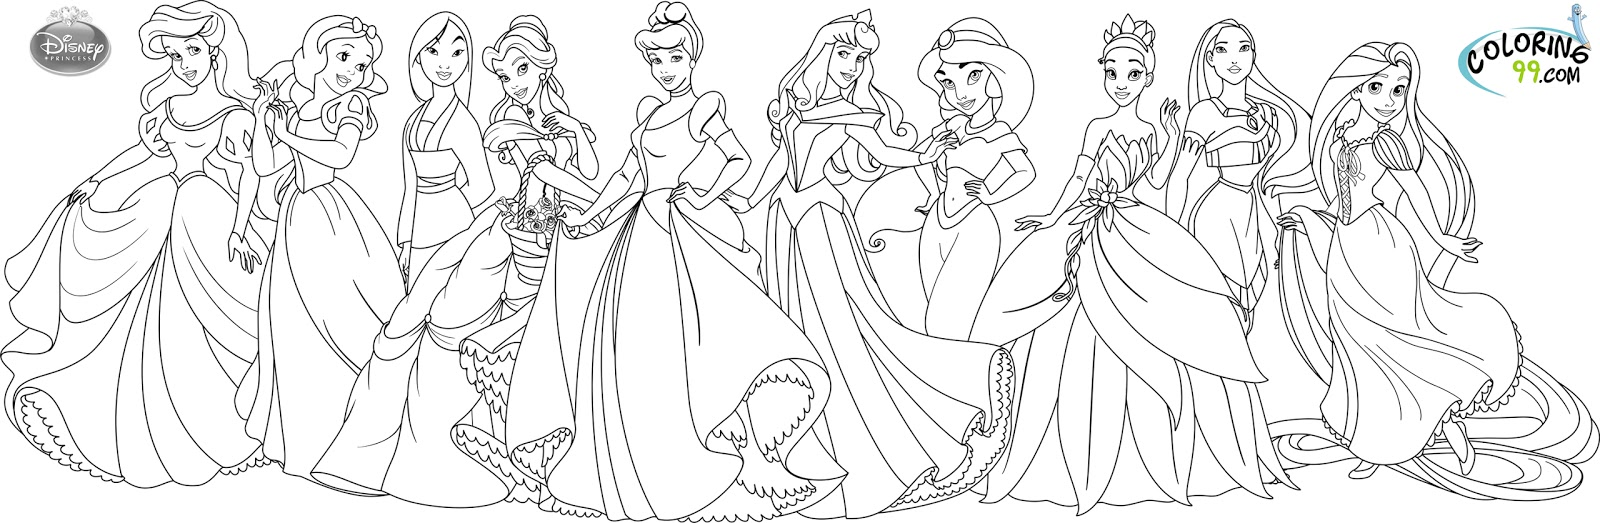 princess coloring pages online www pavingmaze com easy sleeping